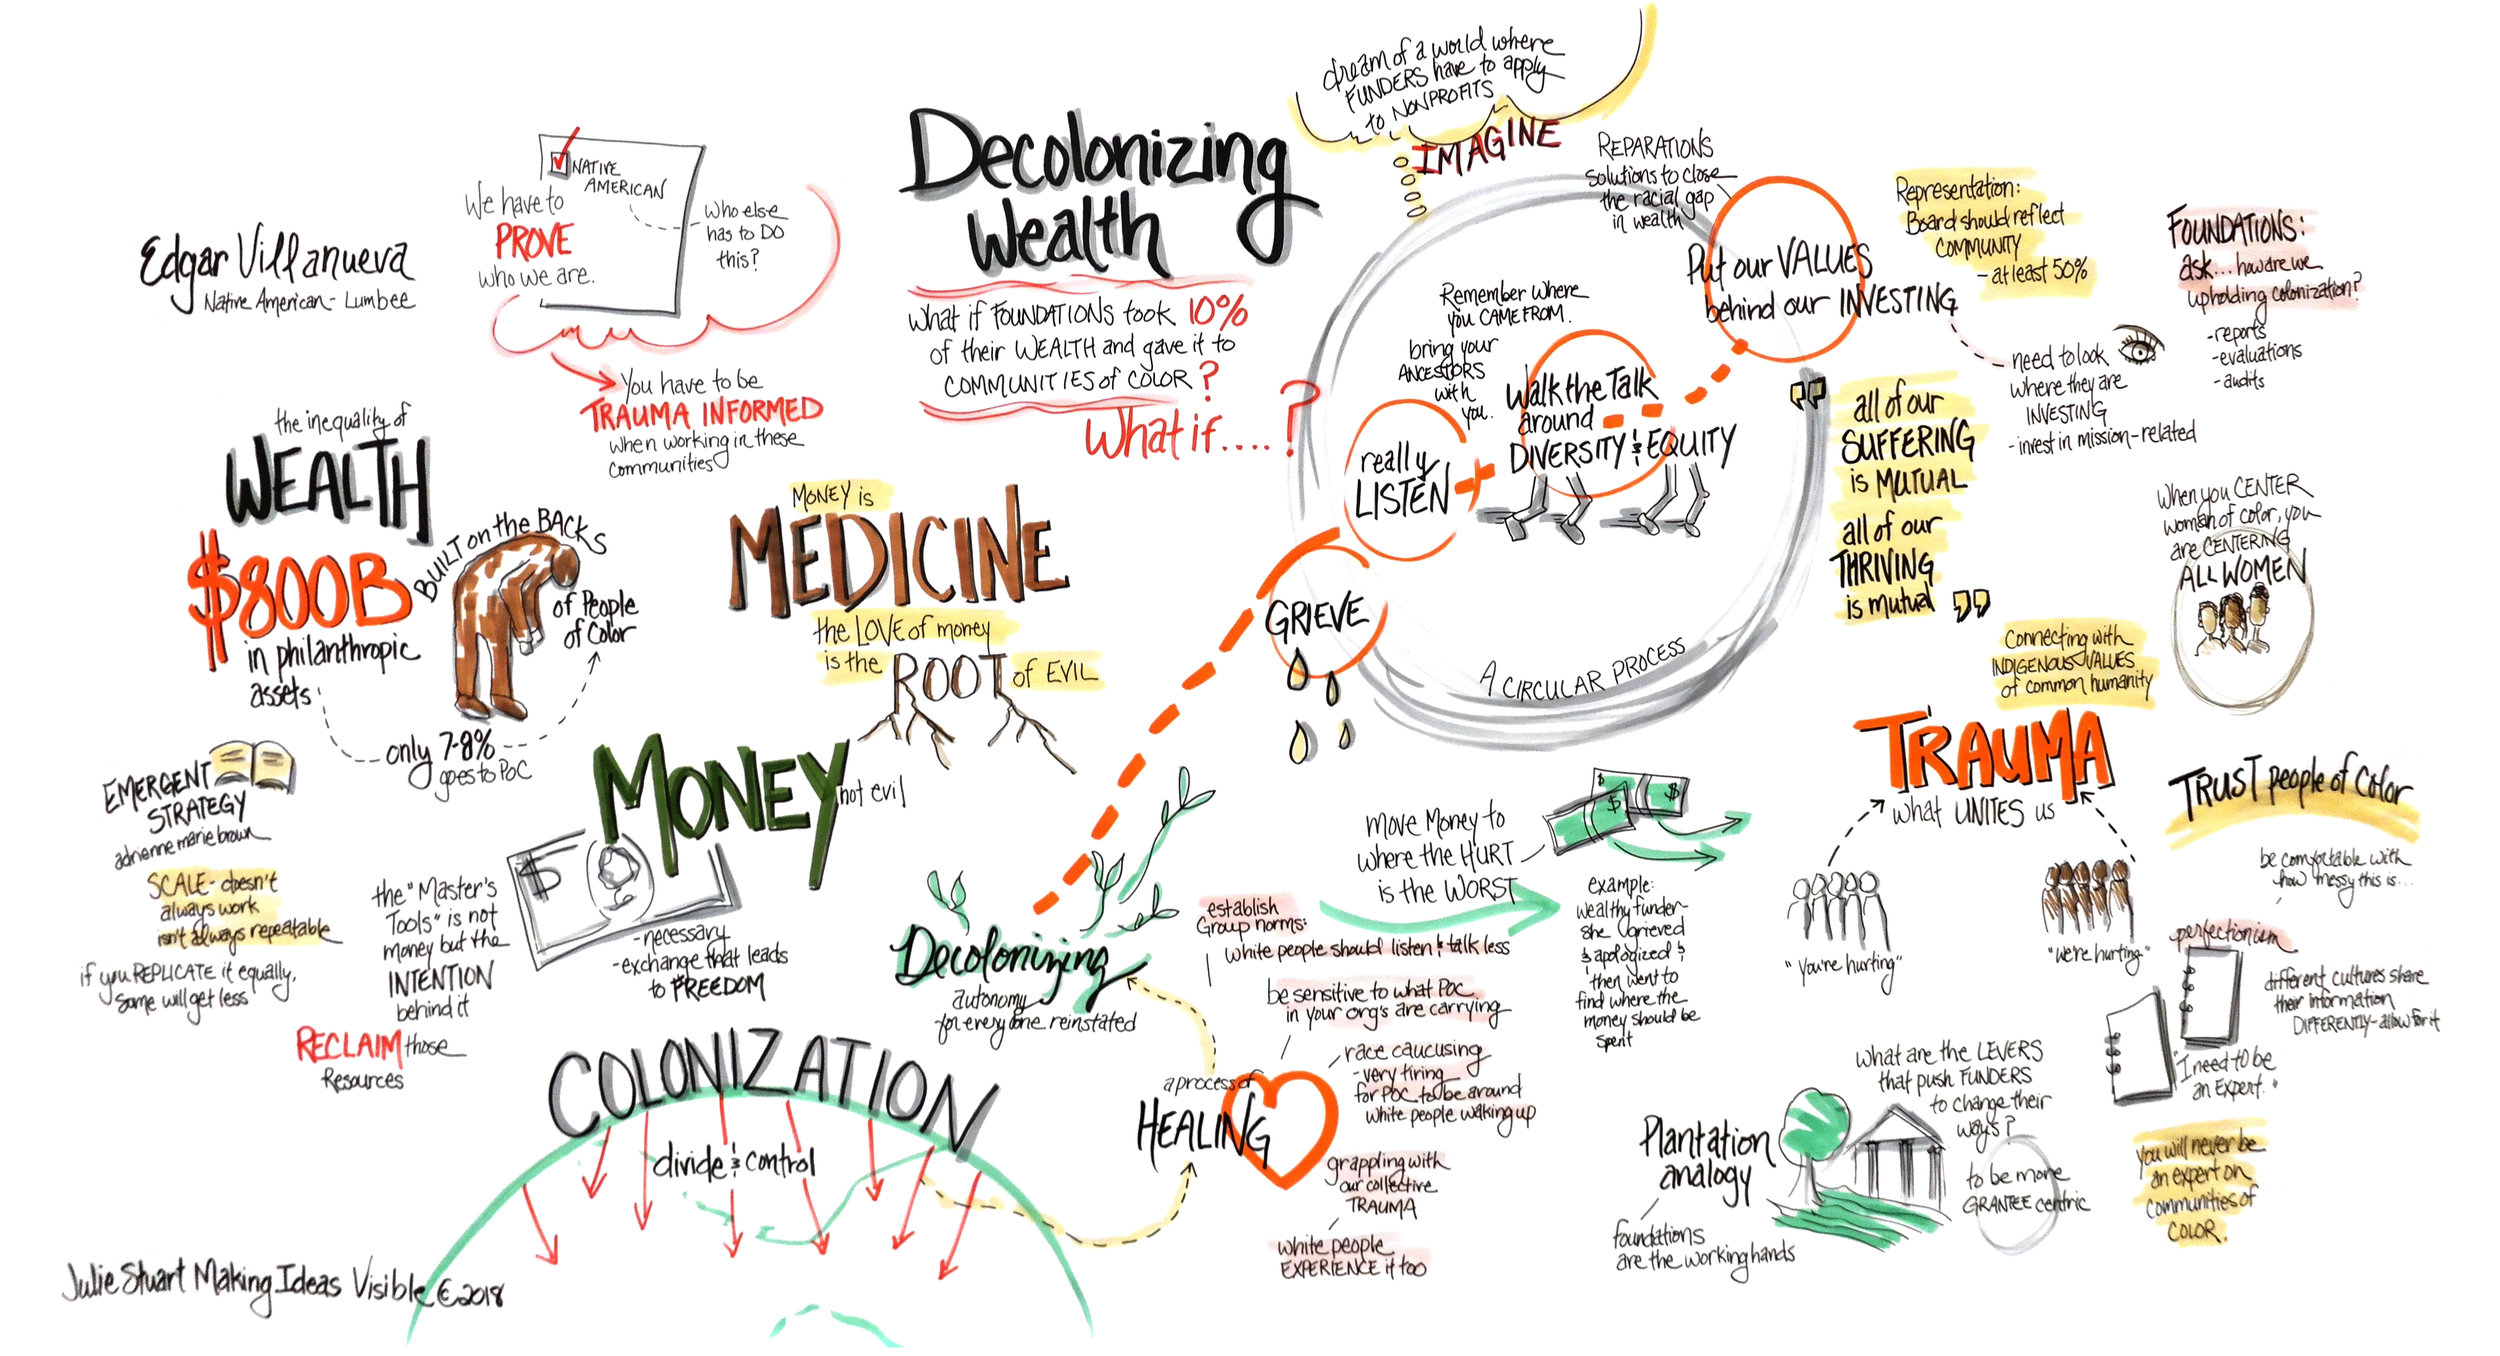 Decolonizing Wealth Mind Map.jpg